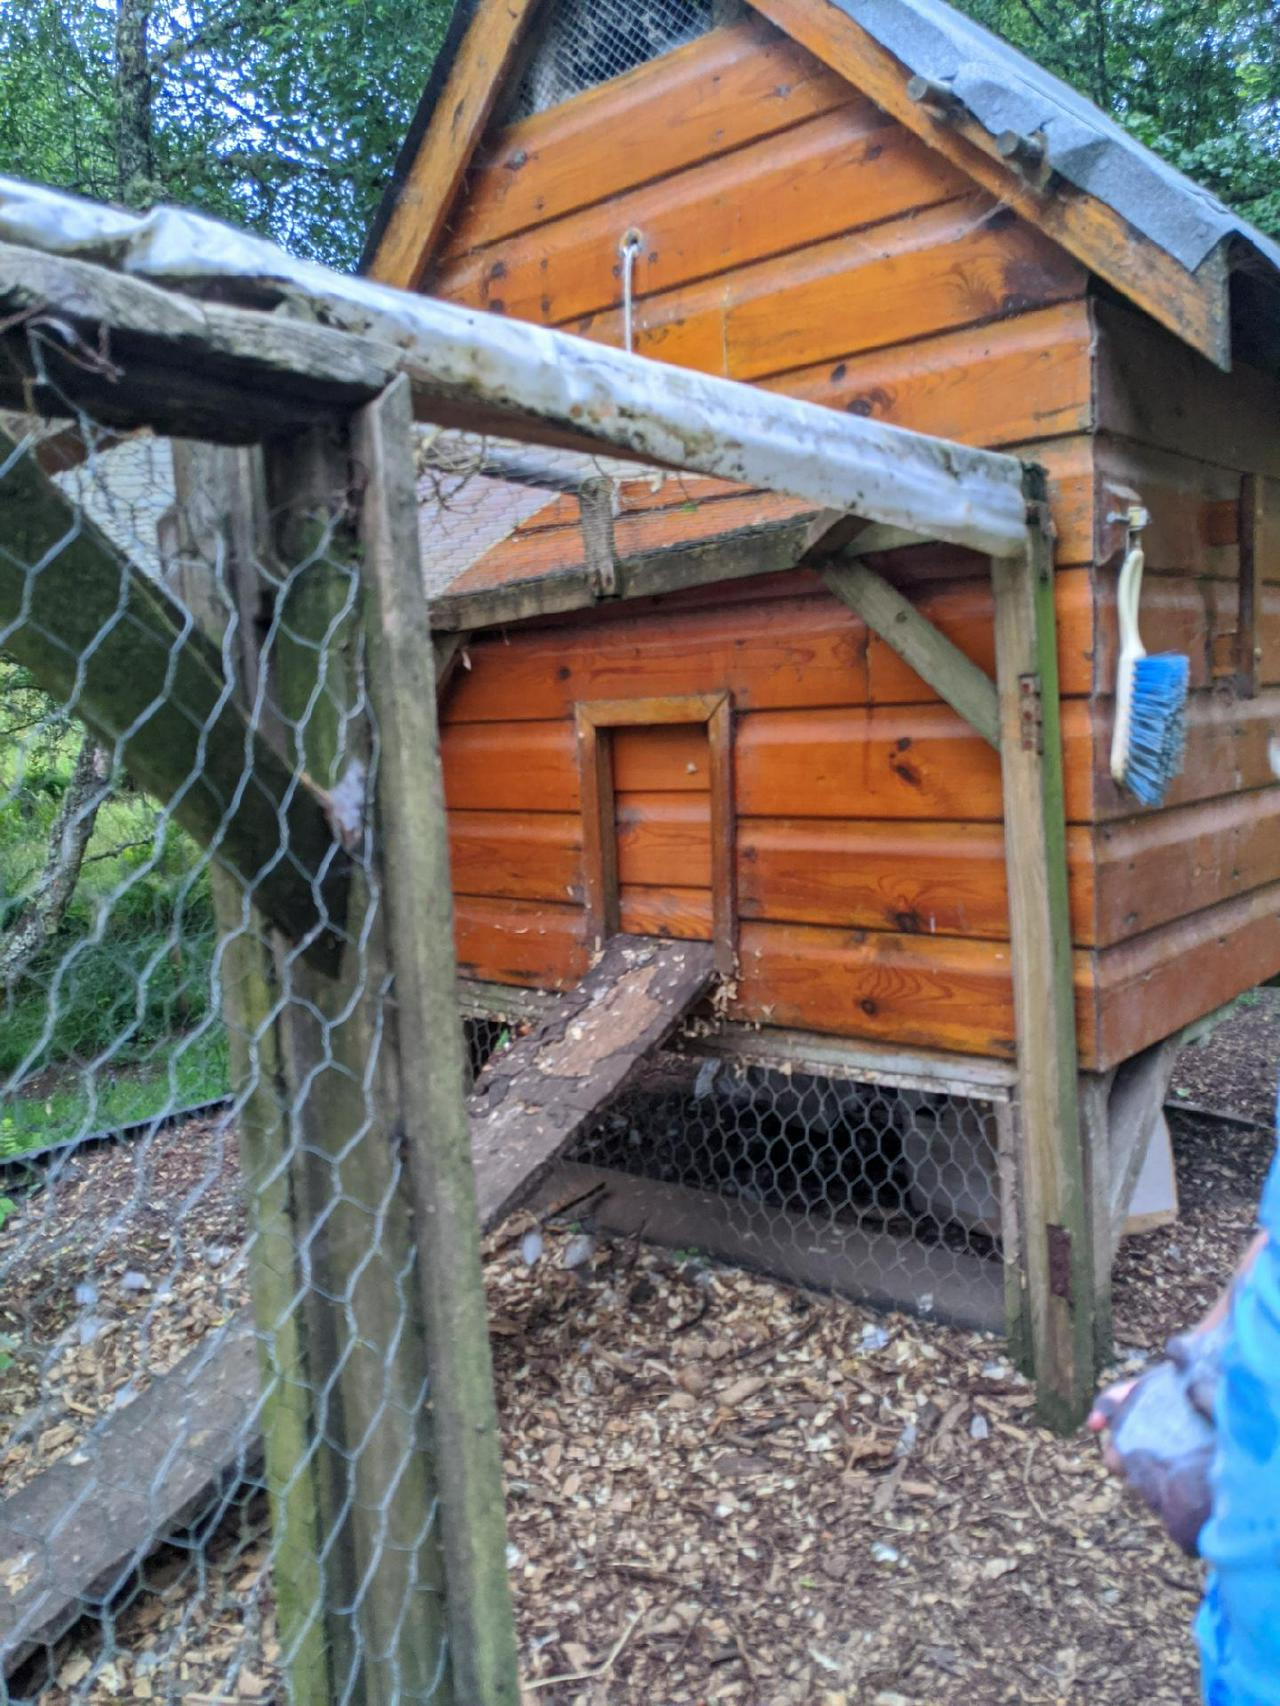 A wooden hen house with a closed door. A tiny person's hand is just visible on the edge of the photo. A chicken-wire run, with plastic roof, extends from the house.